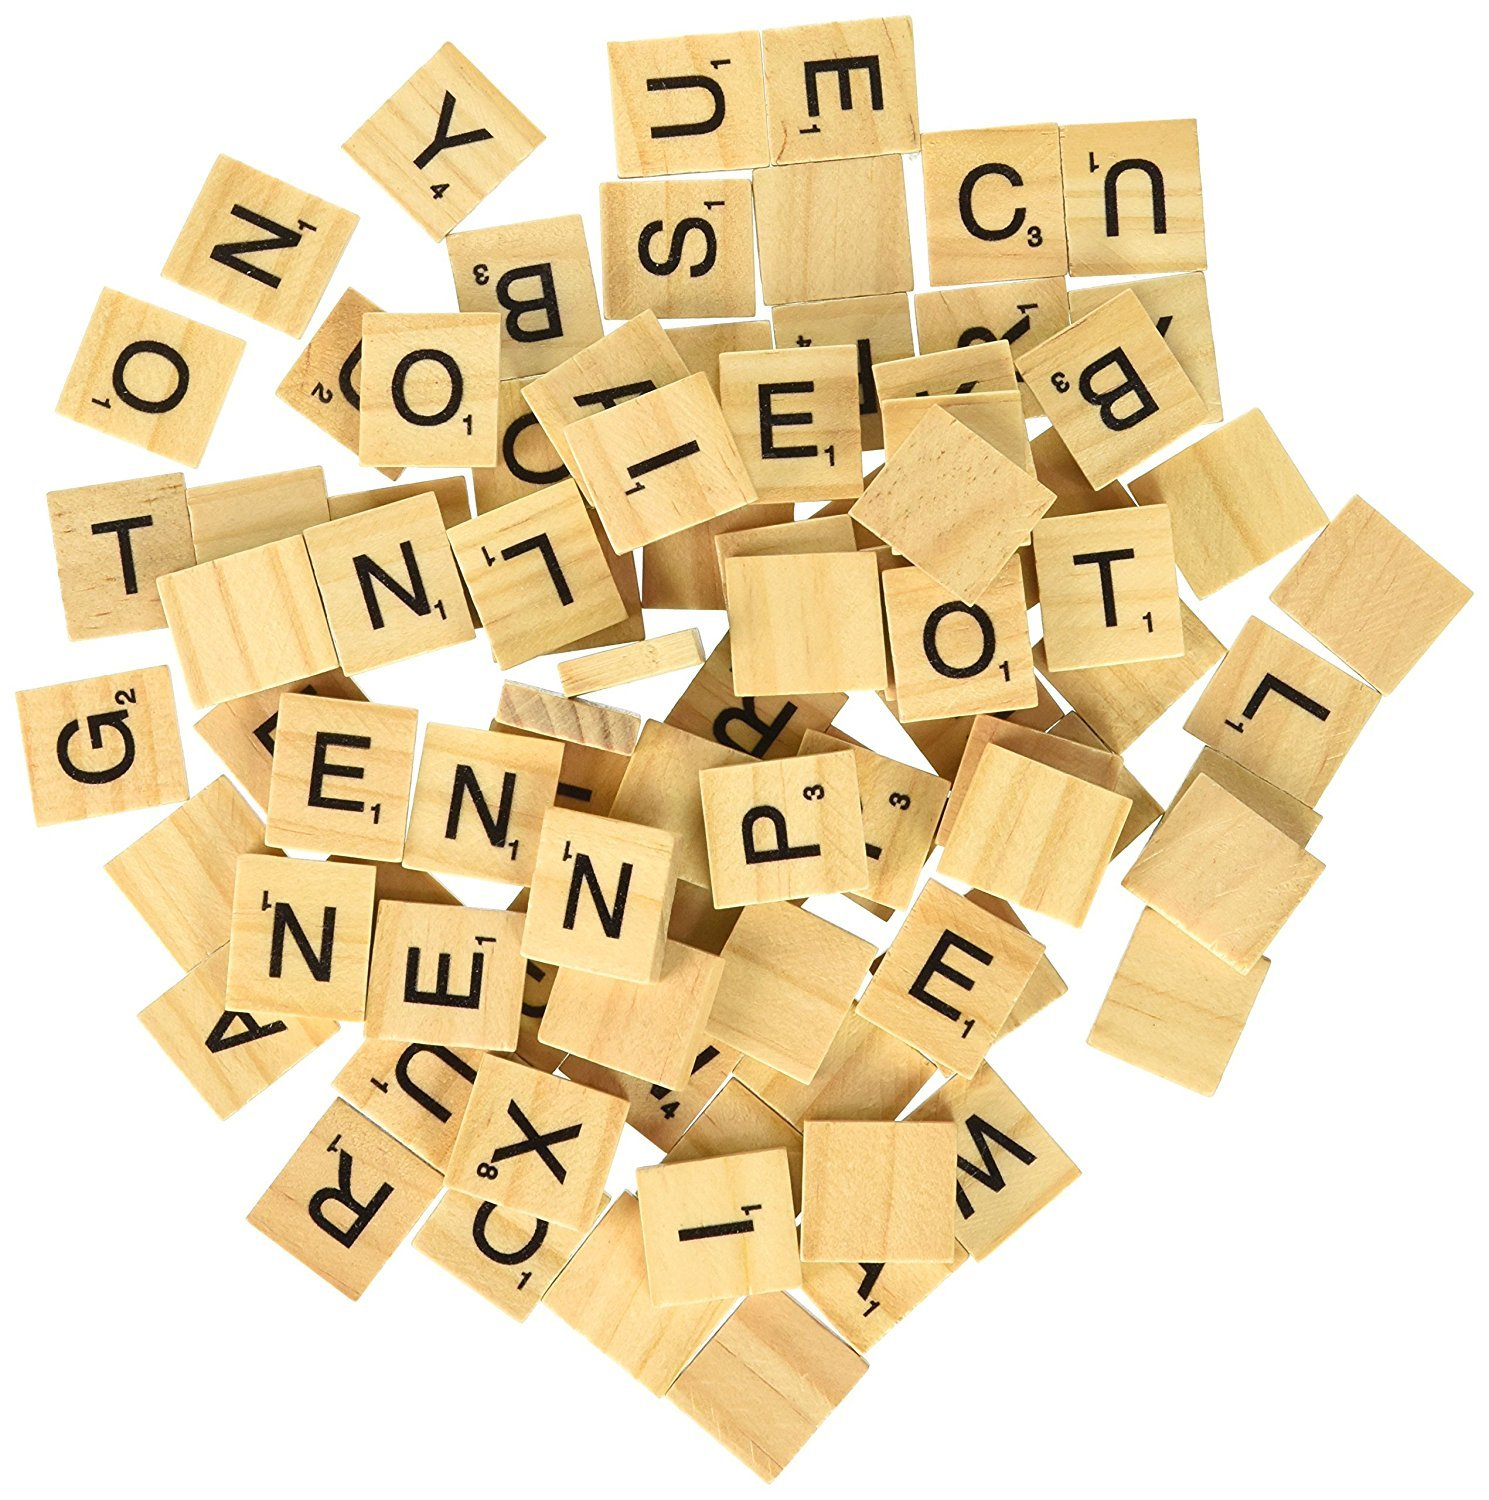 Scrabble Tiles 100 Letter Tiles Wooden Scrabbles Tiles, Wooden Board Game Bulk New Crafts Scrapbooking Replacement Pendant Pieces